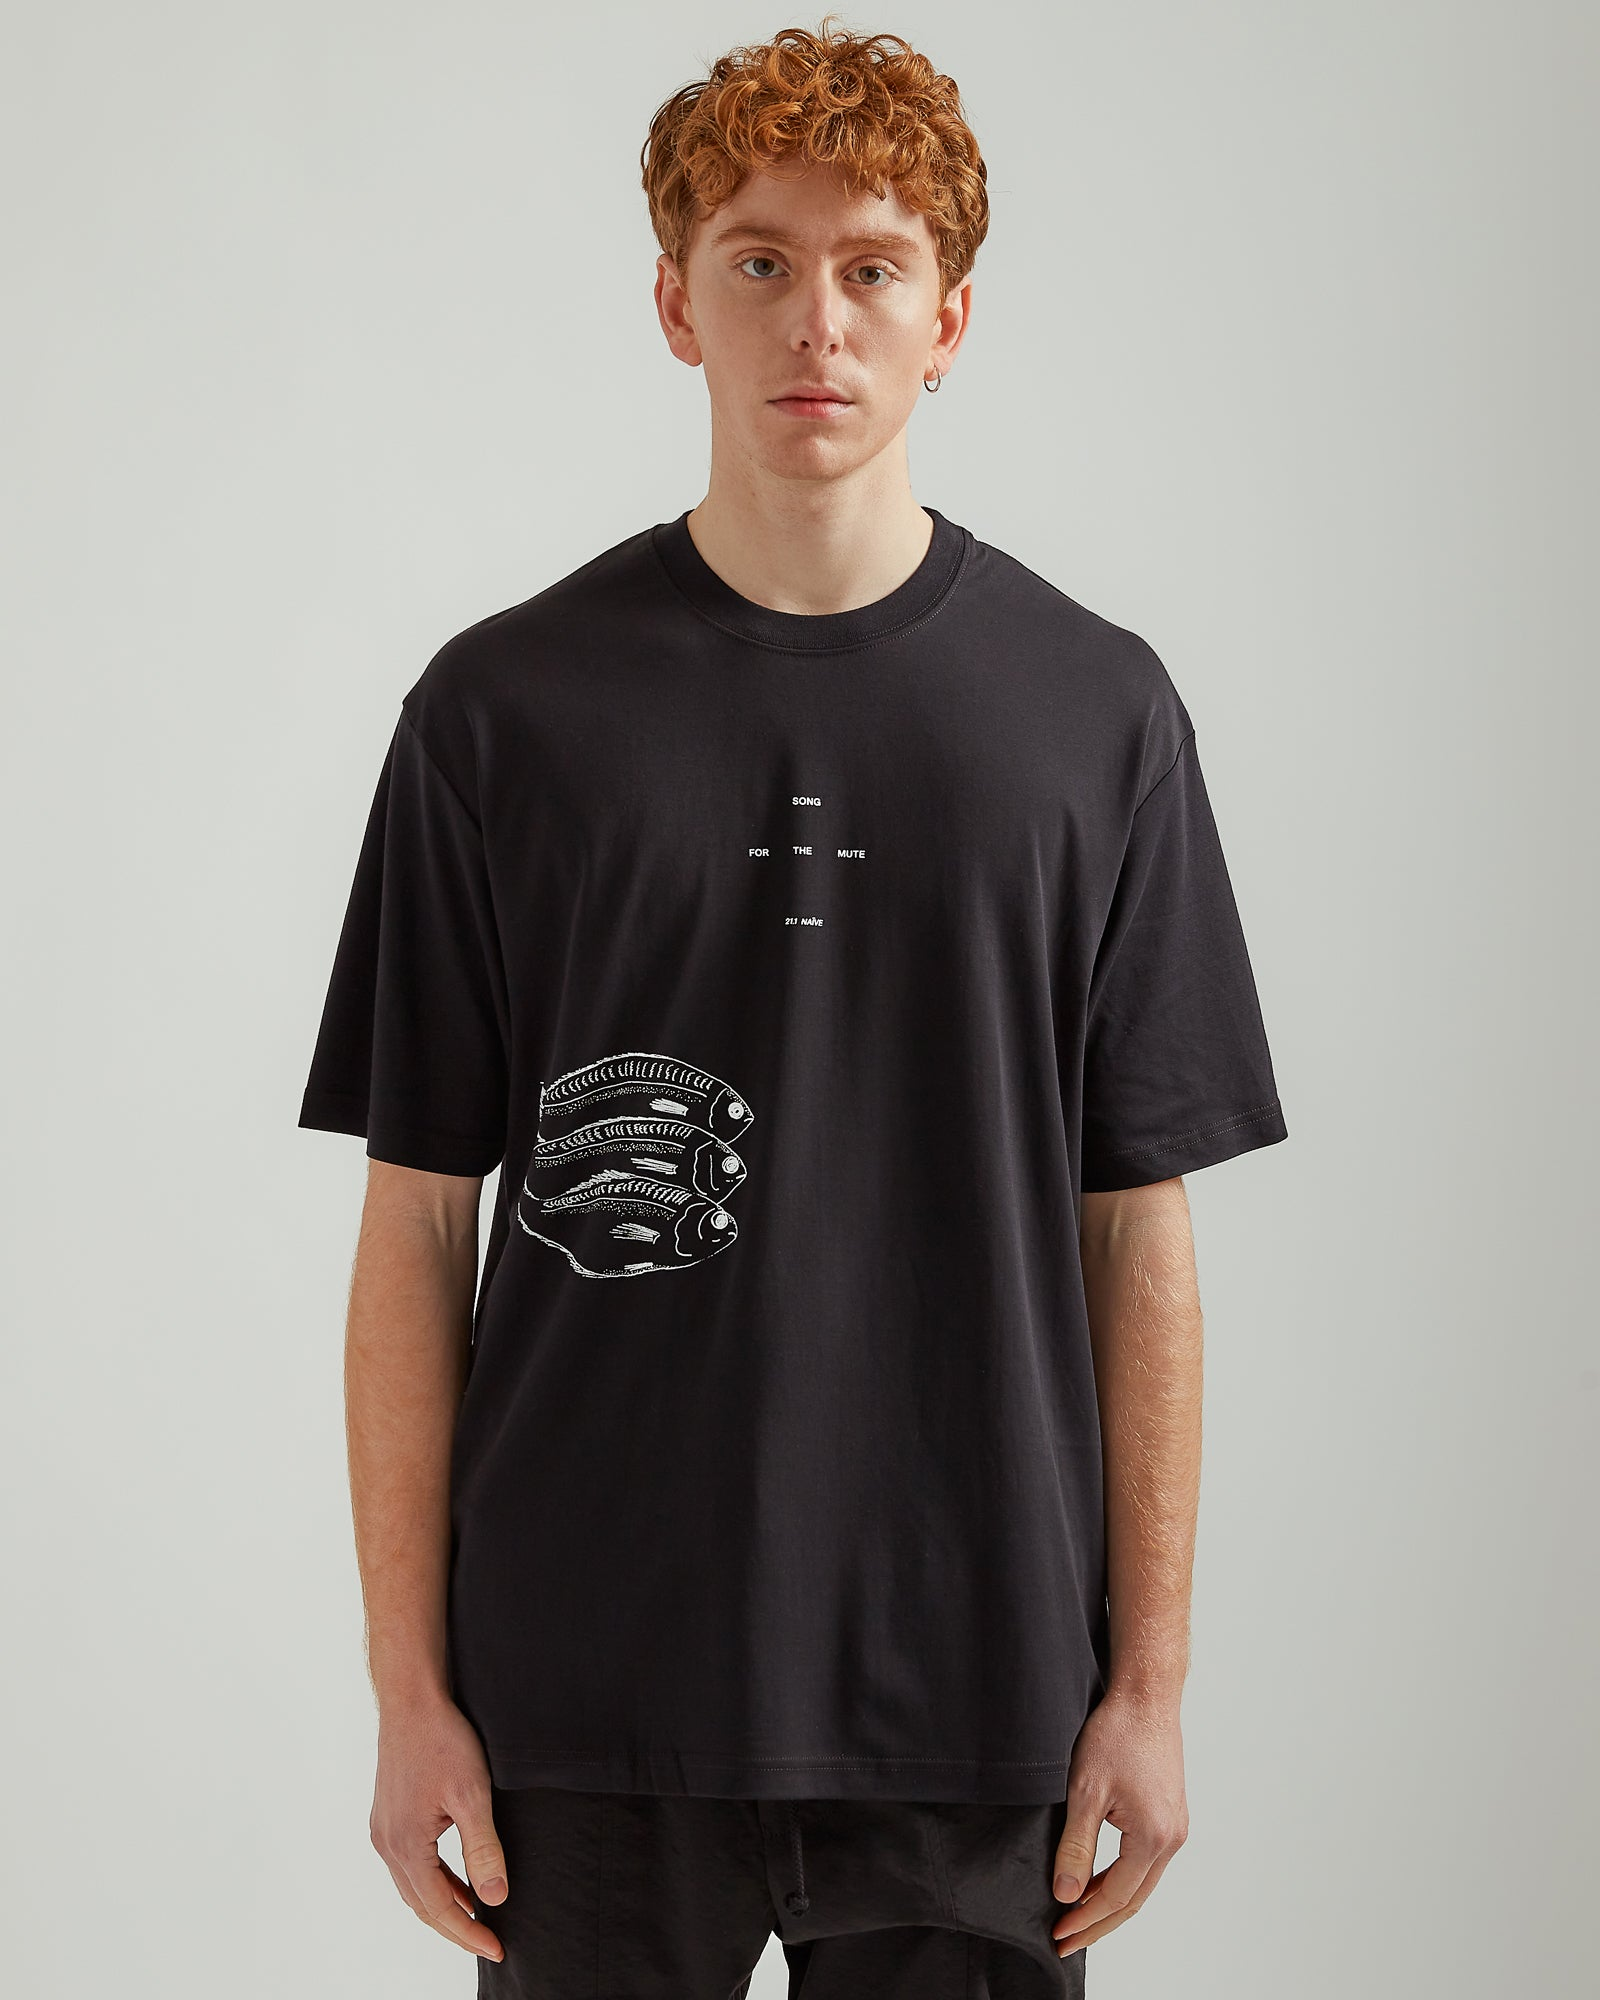 Fish Oversized T-Shirt in Black